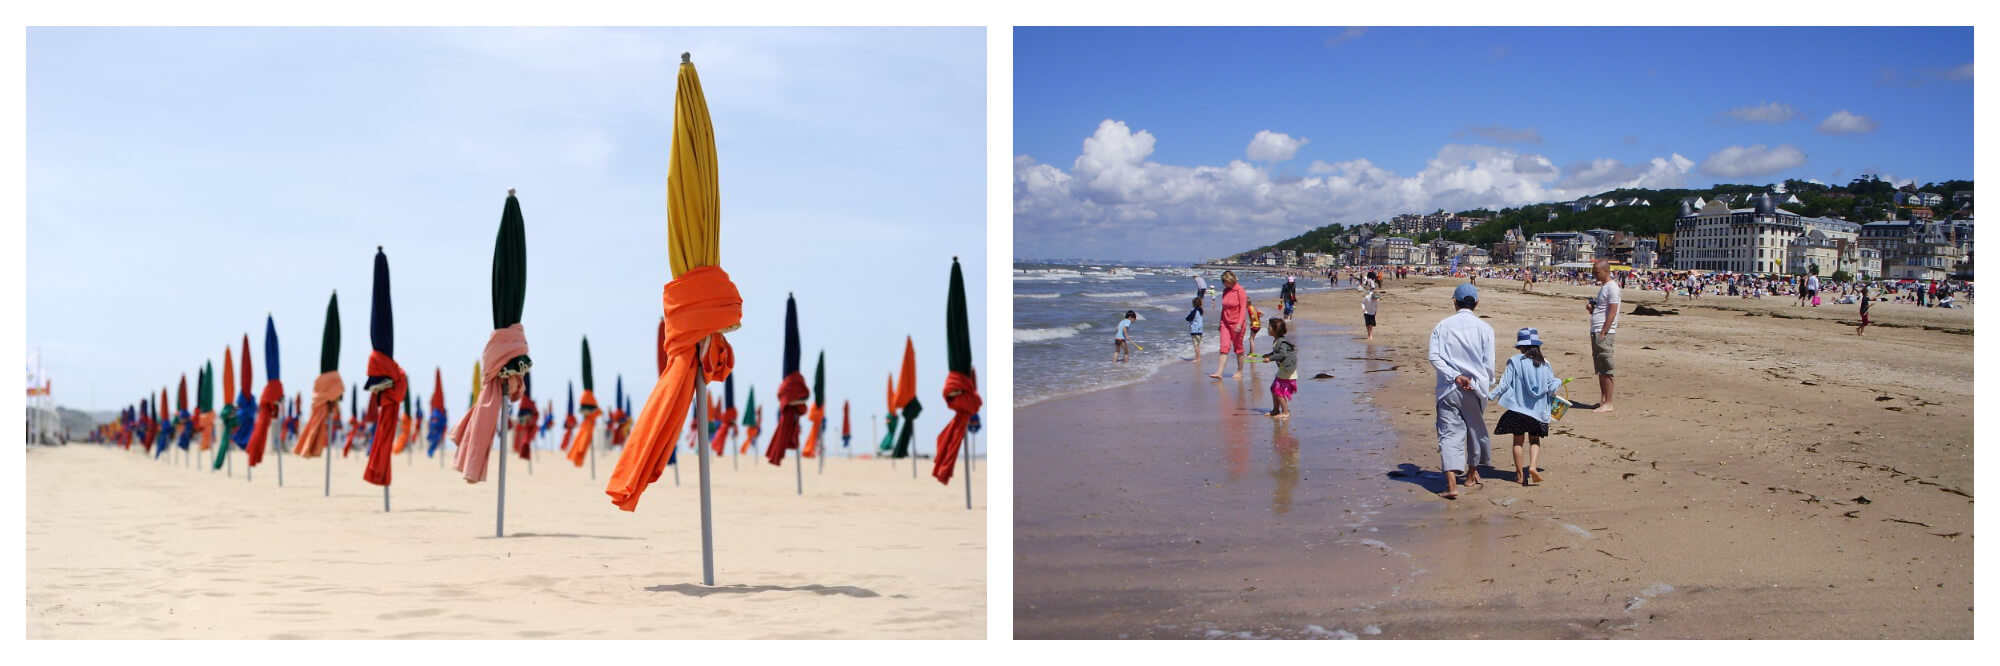 On left: The classic, brightly-hued beach umbrellas stand to attention on the beach of Deauville, awaiting the holiday crowd. On right: Beachgoers enjoy an afternoon stroll in Deauville, dipping in and out of the playful waves.